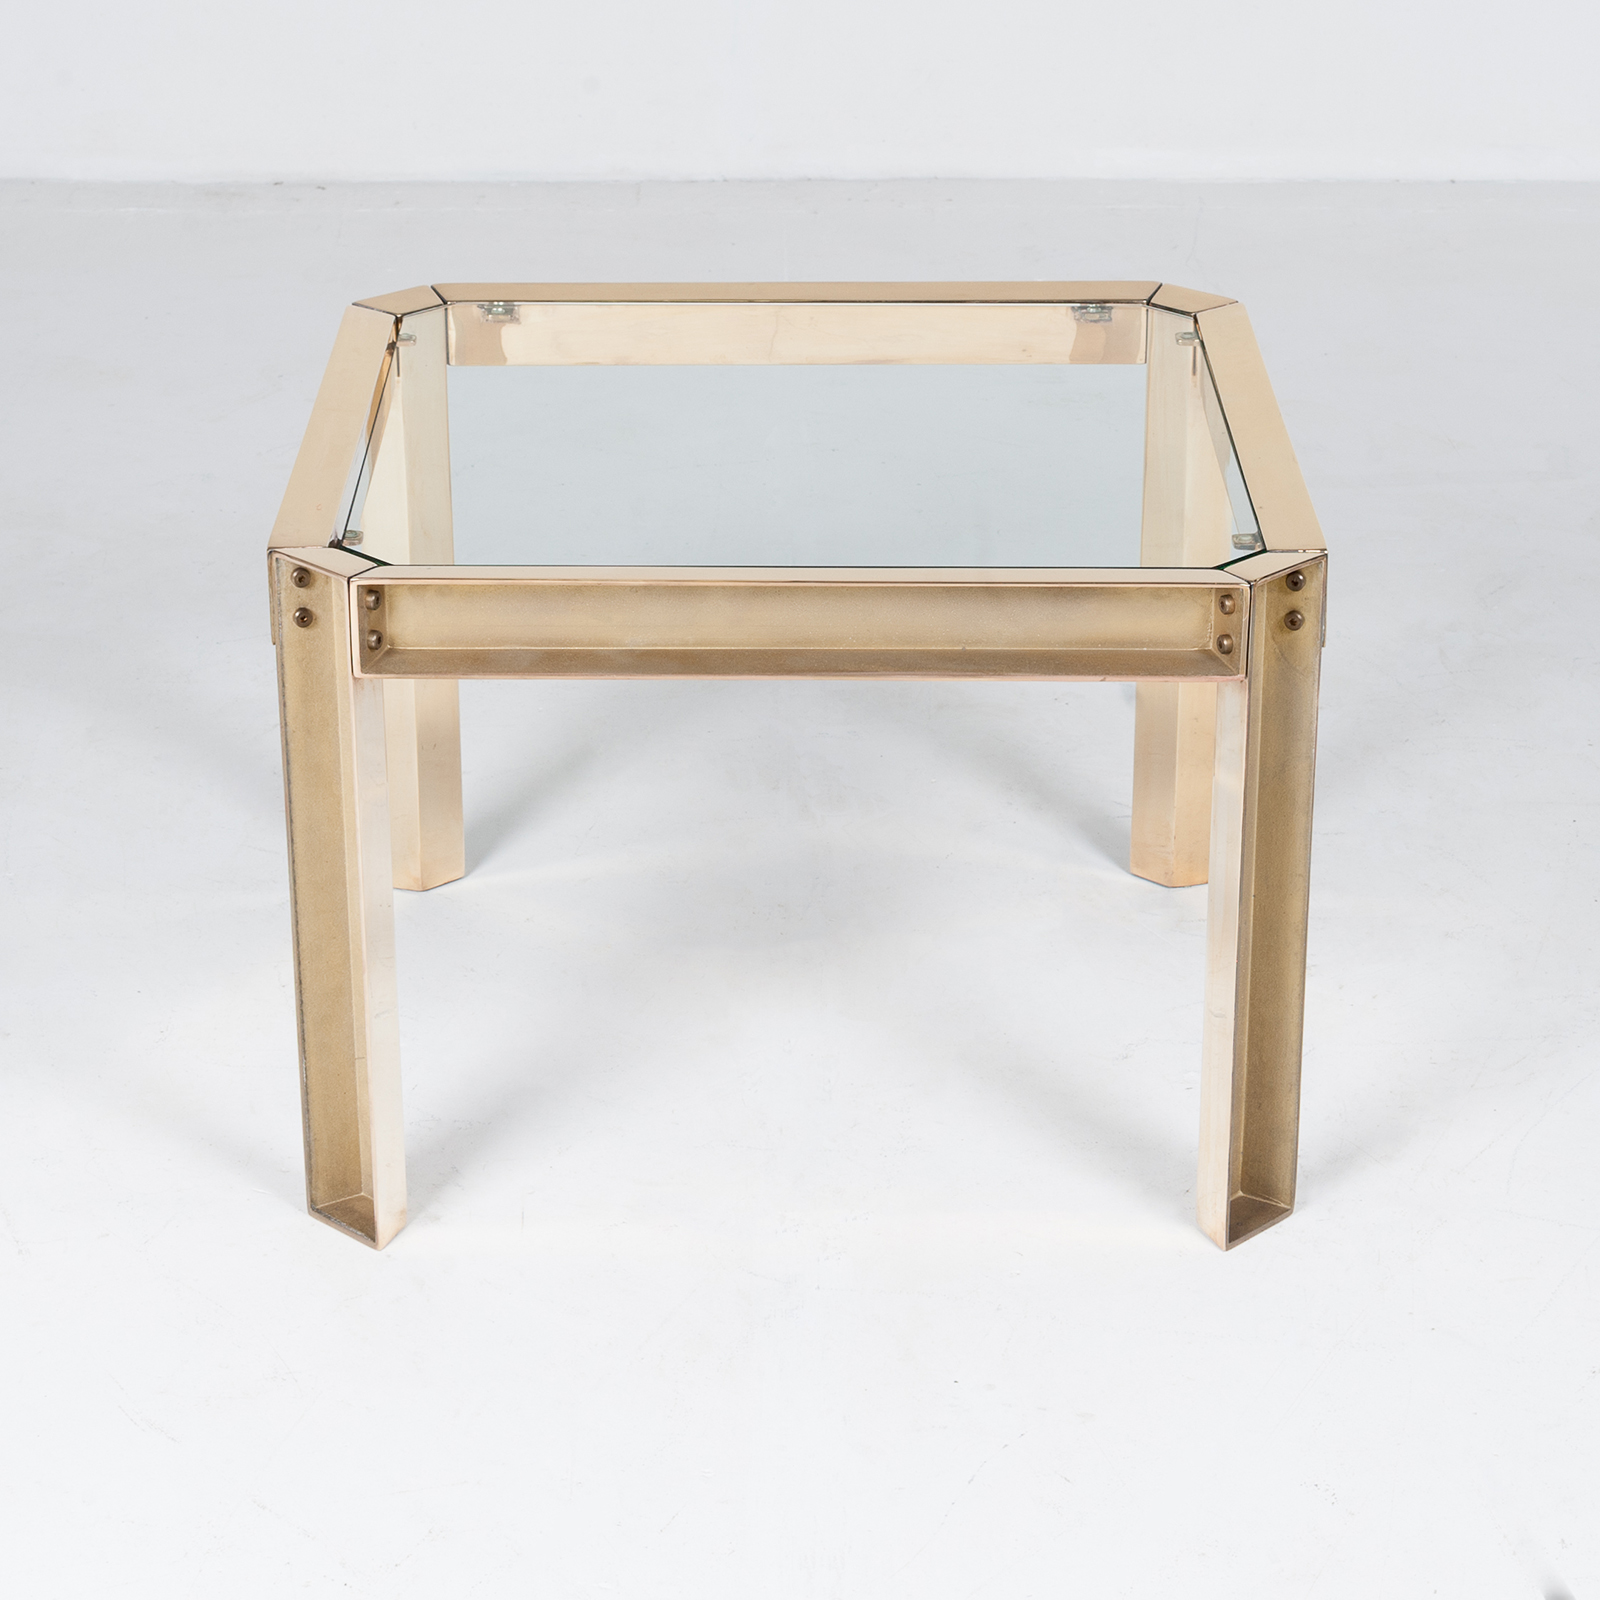 Square Side Table With Clear Glass Top By Peter Ghyczy, 1970s, The Netherlands 35